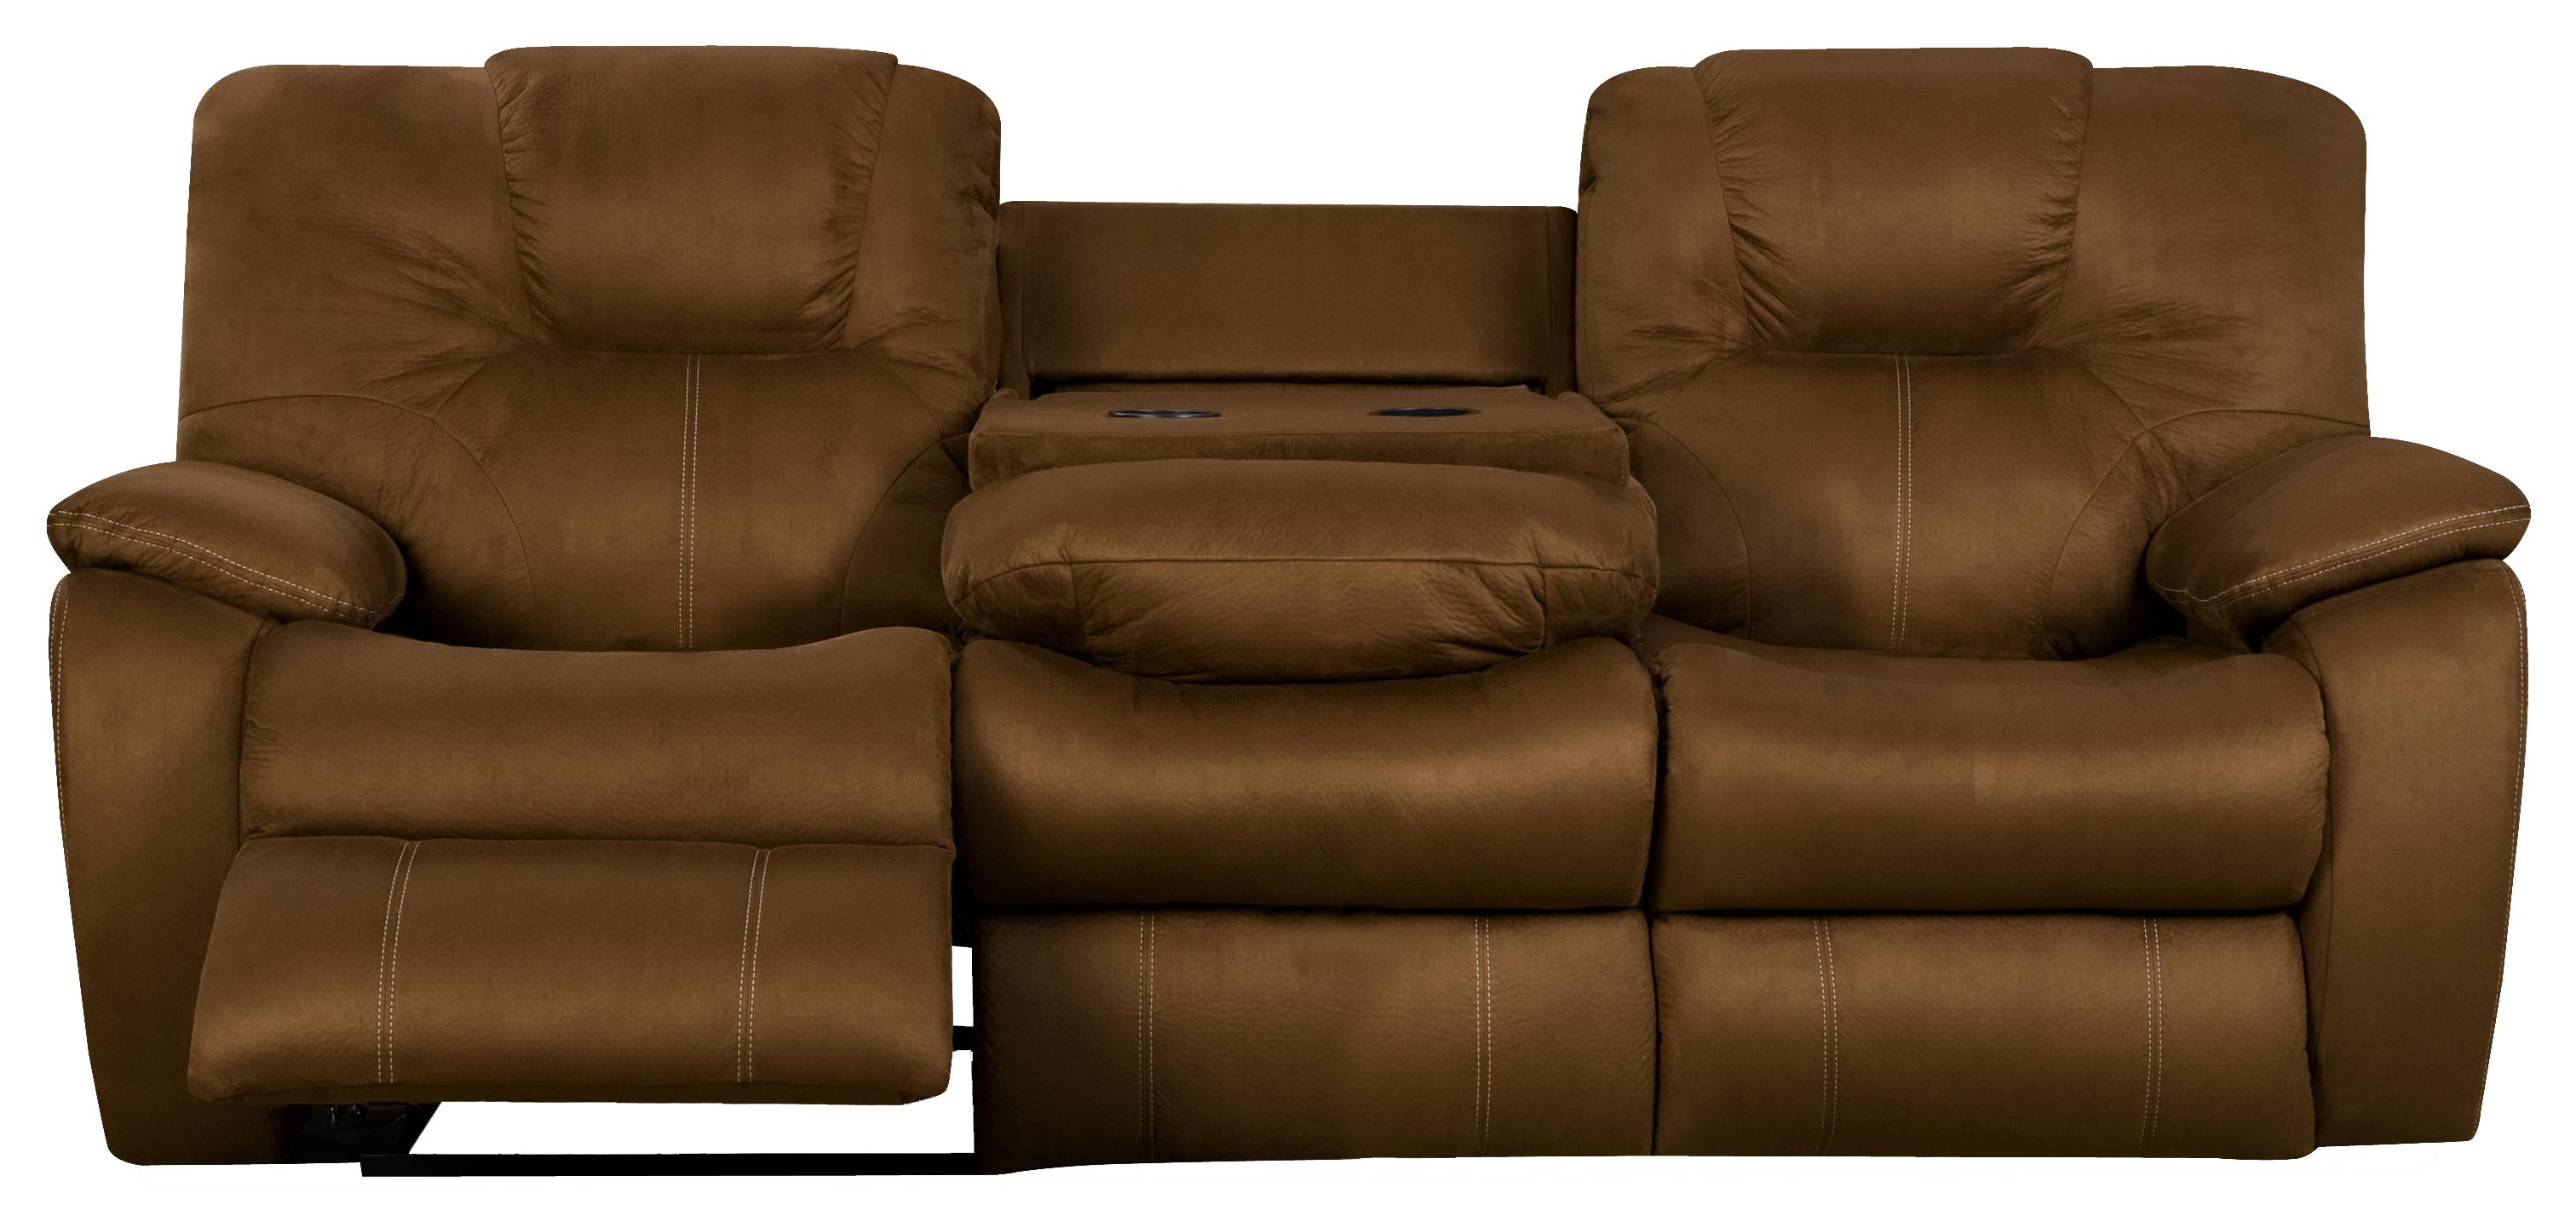 microfiber reclining sofa with drop down table mattress topper suitable for bed the furniture